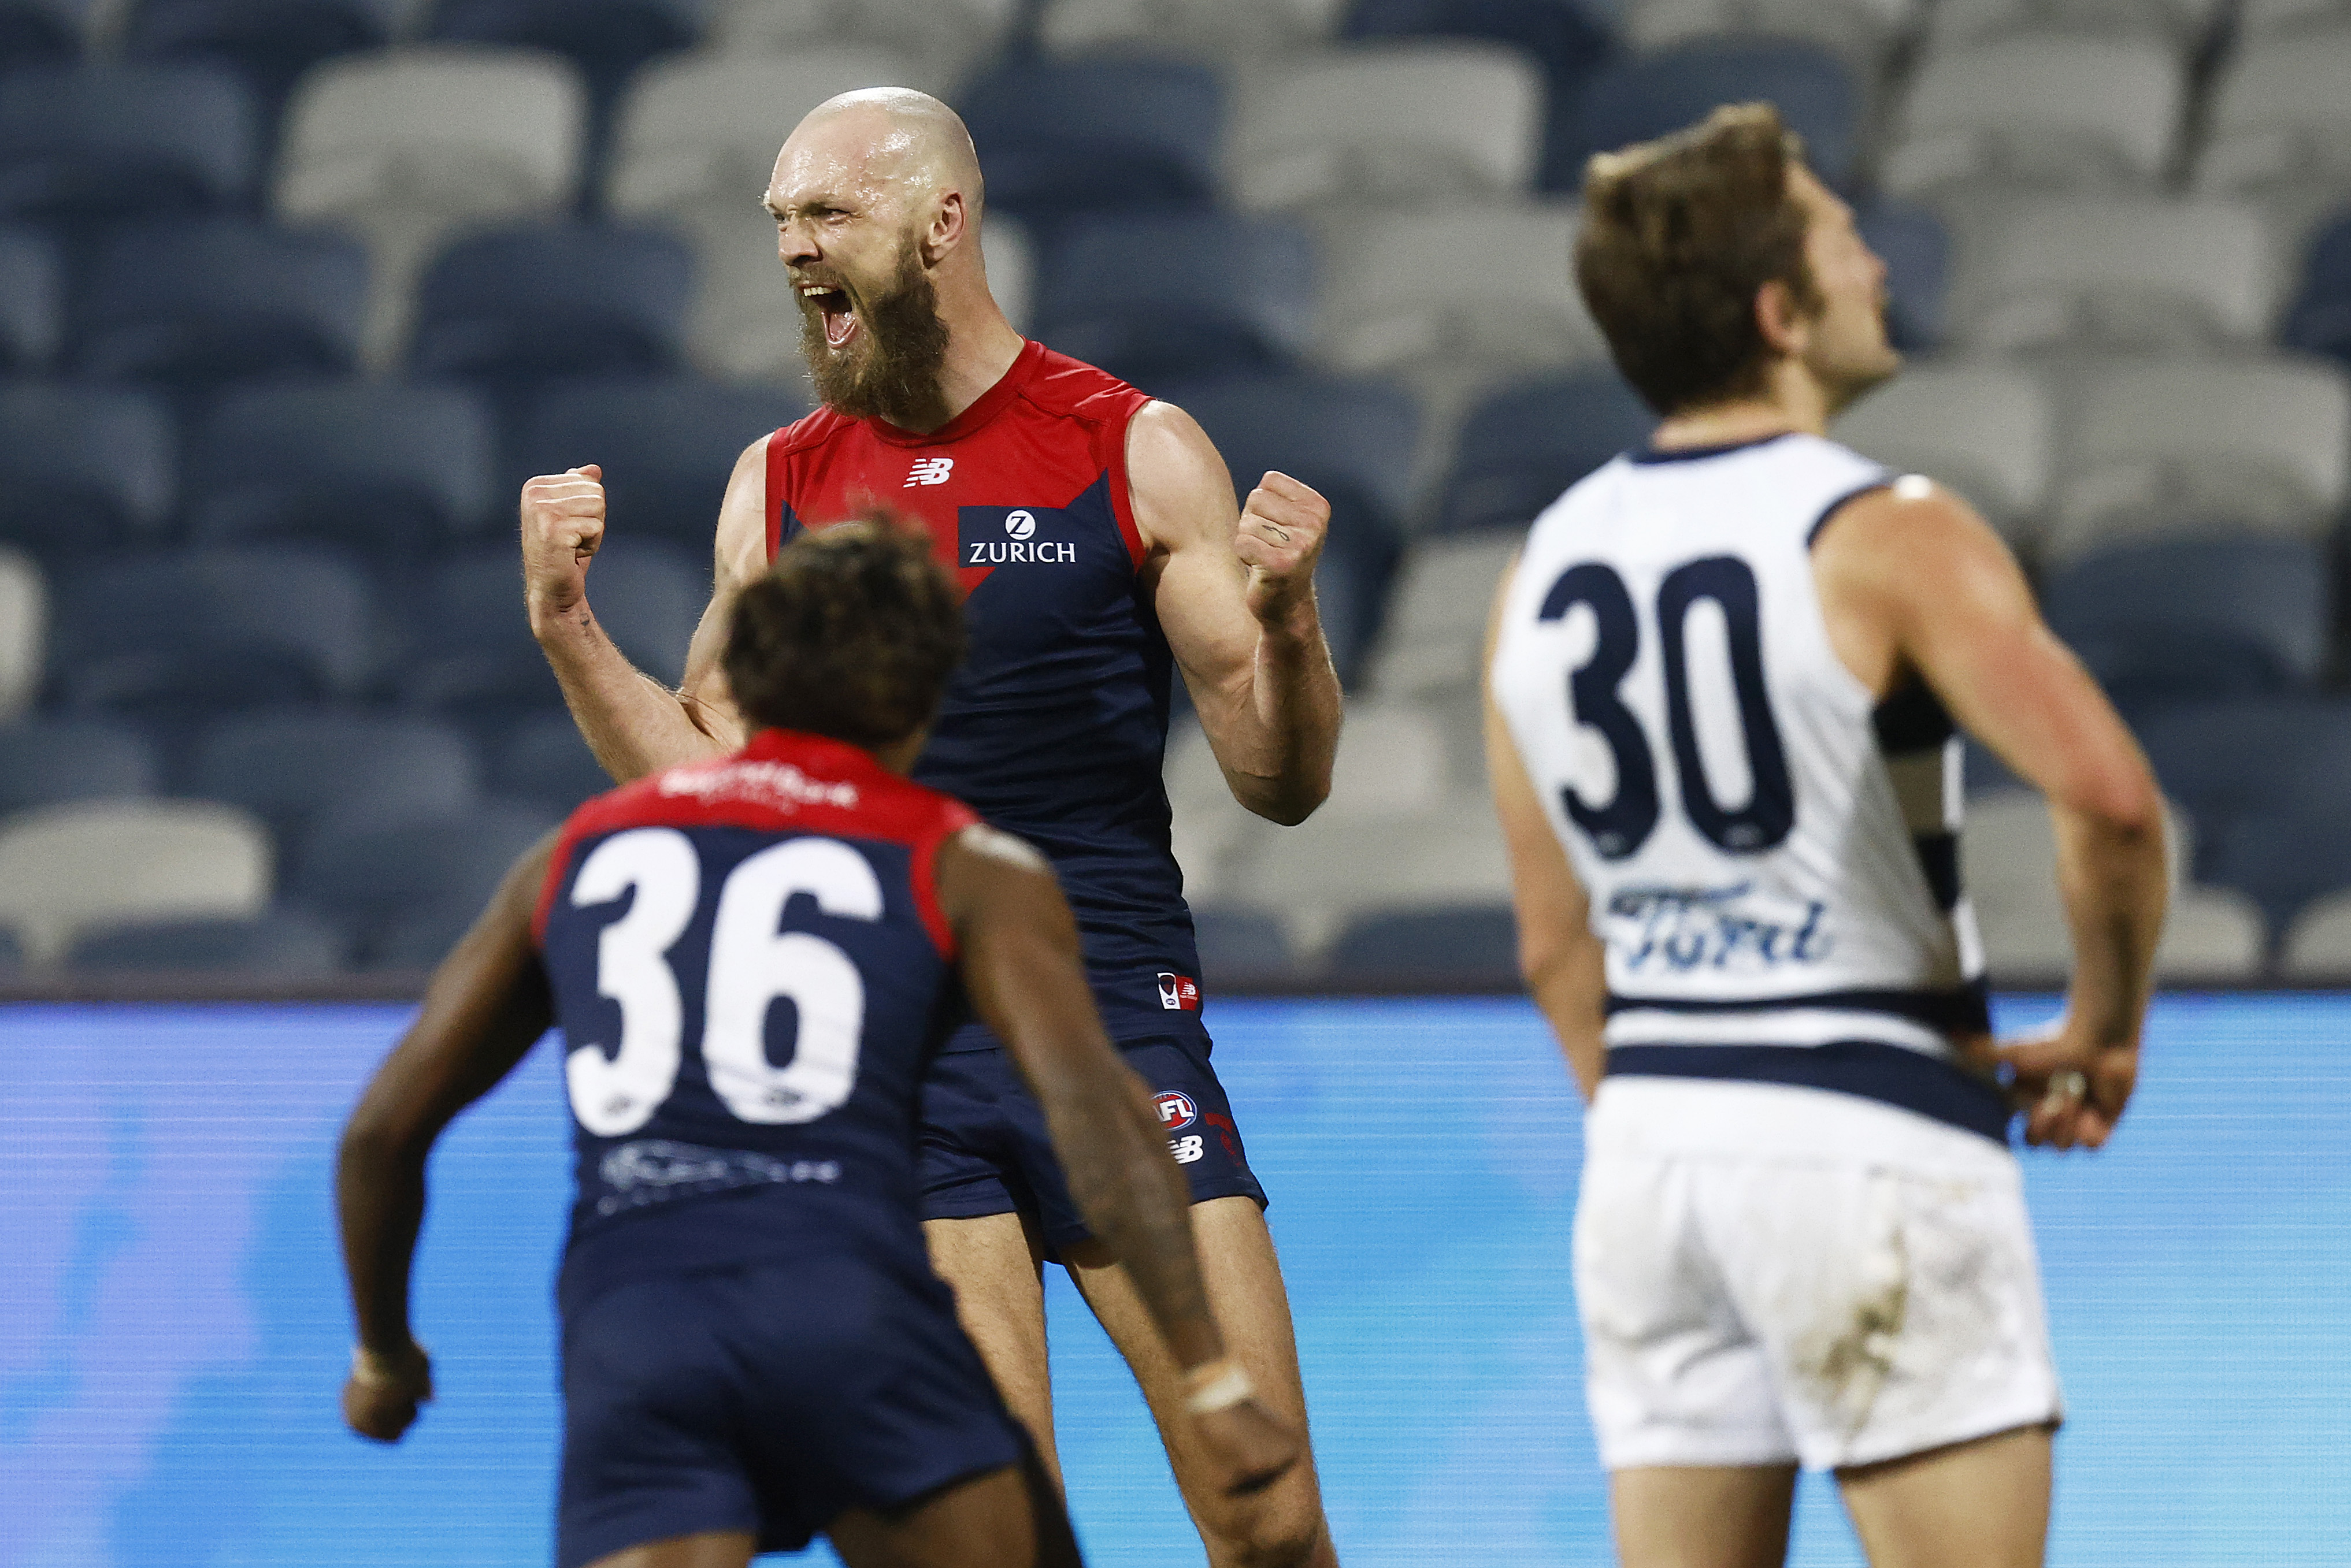 A bald, bearded Melbourne AFL player punches the air with his fists and roars in delight as a teammate runs toward him.